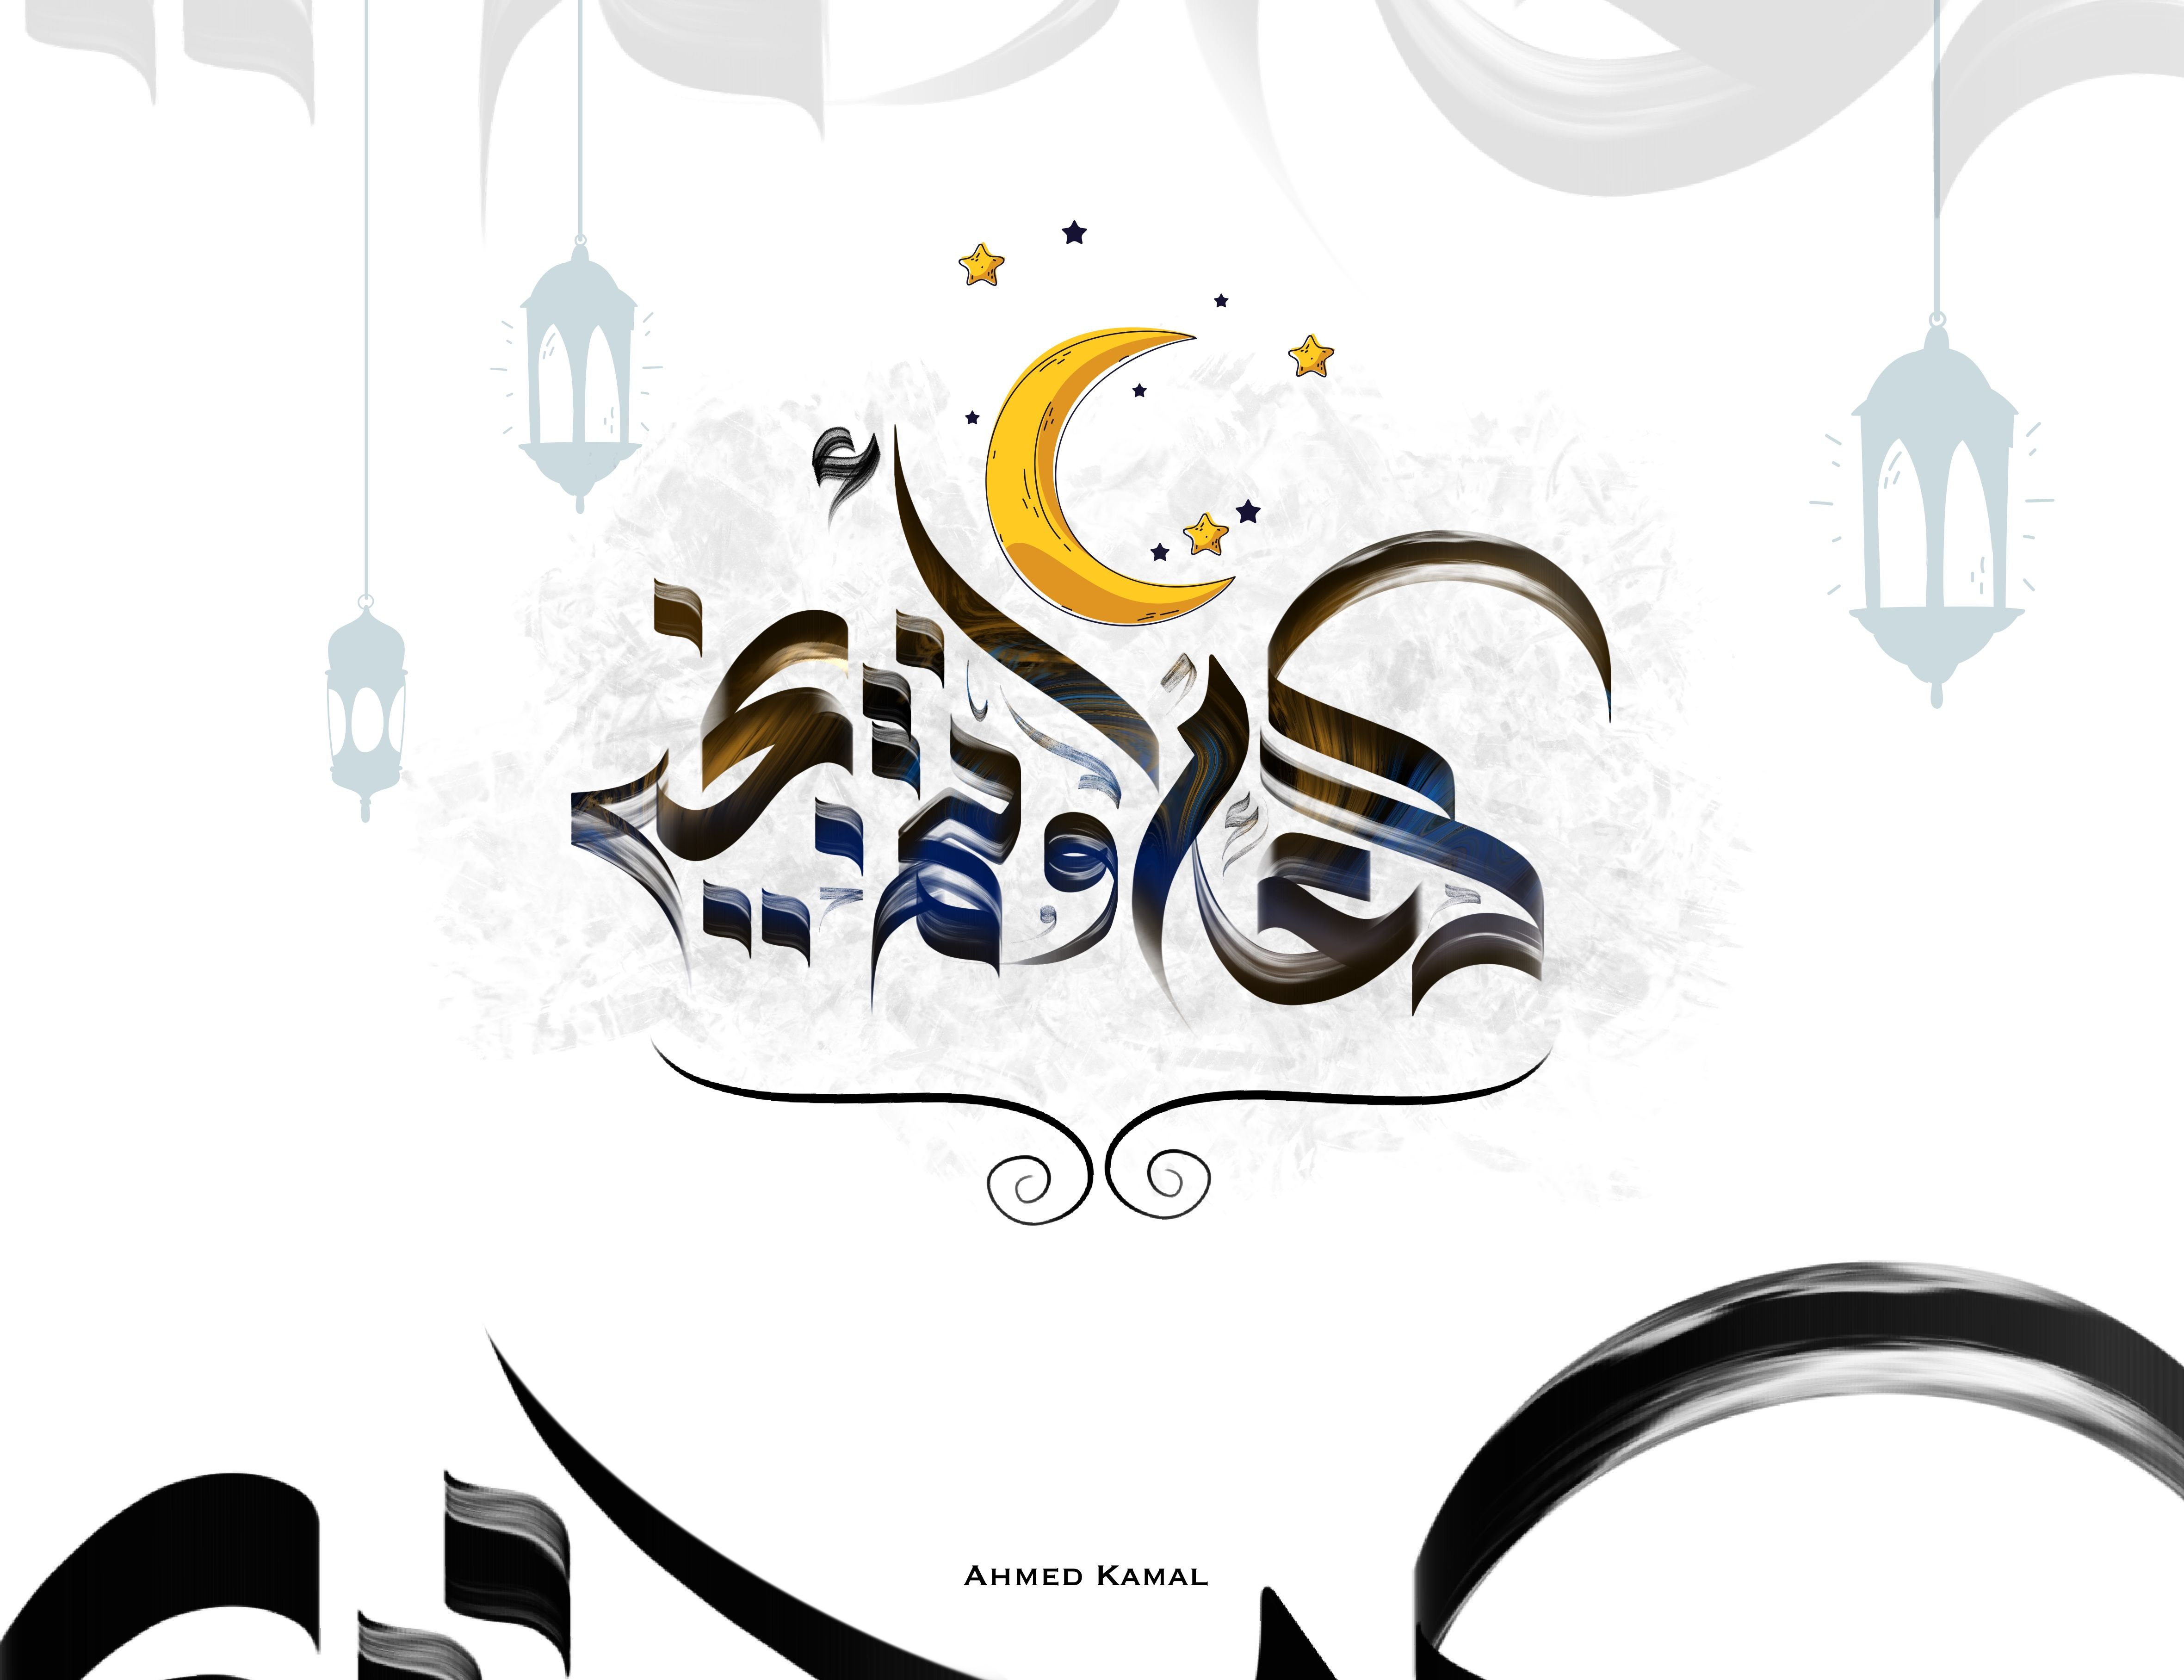 رمضان كريم كل عام وانتم بخير Arabic Calligraphy Tattoo Calligraphy Tattoo Calligraphy Fonts